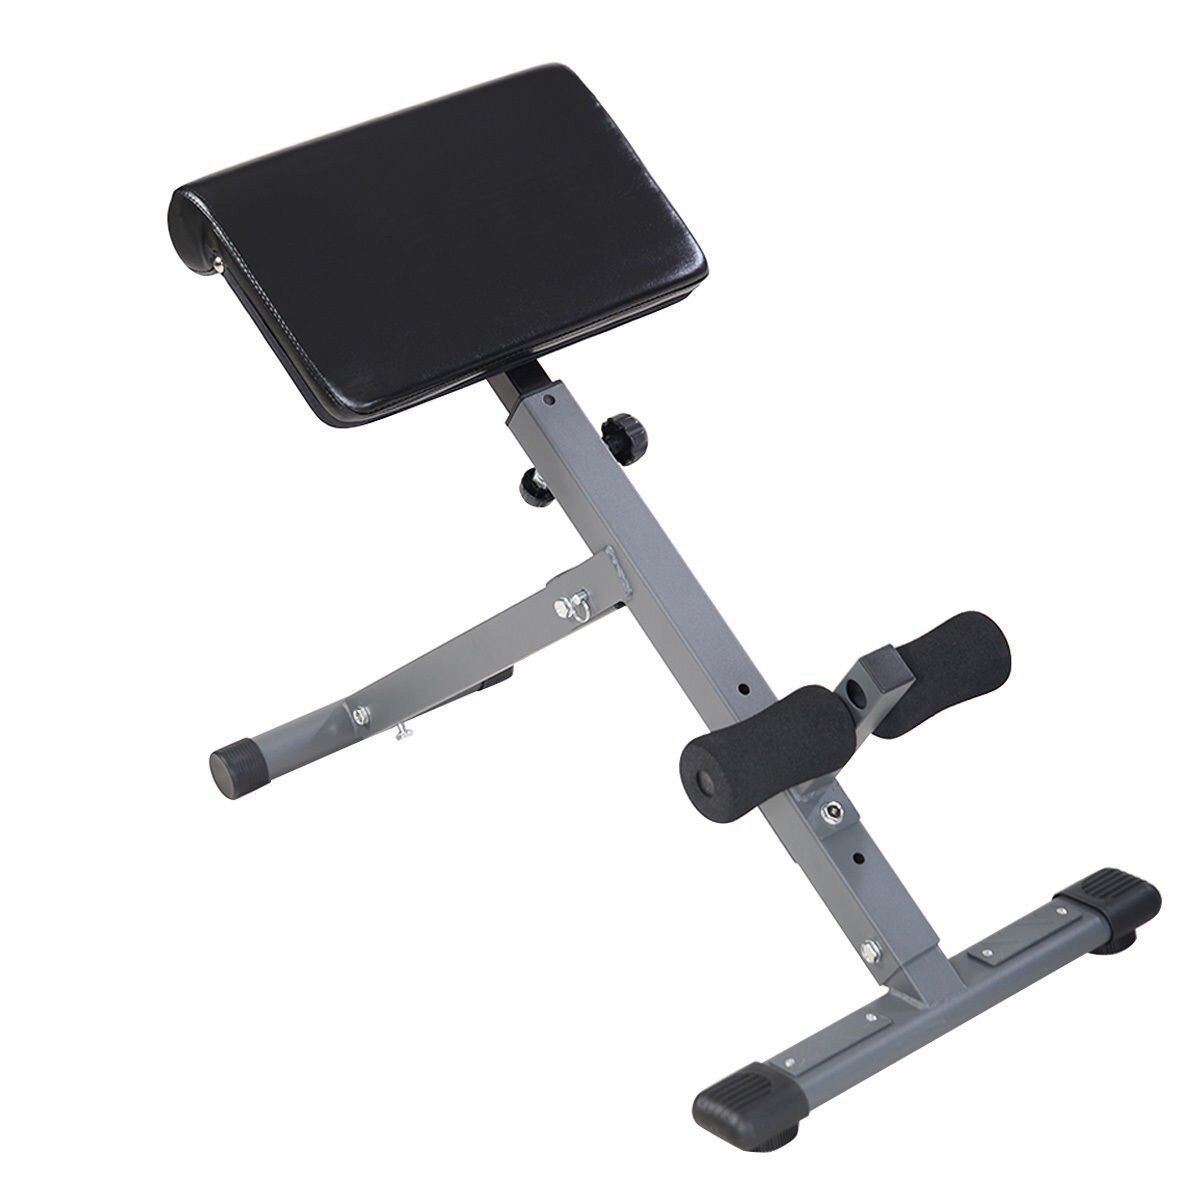 Goplus Adjustable AB Back Bench Hyperextension Exercise Abdominal Roman Chair by Goplus (Image #1)